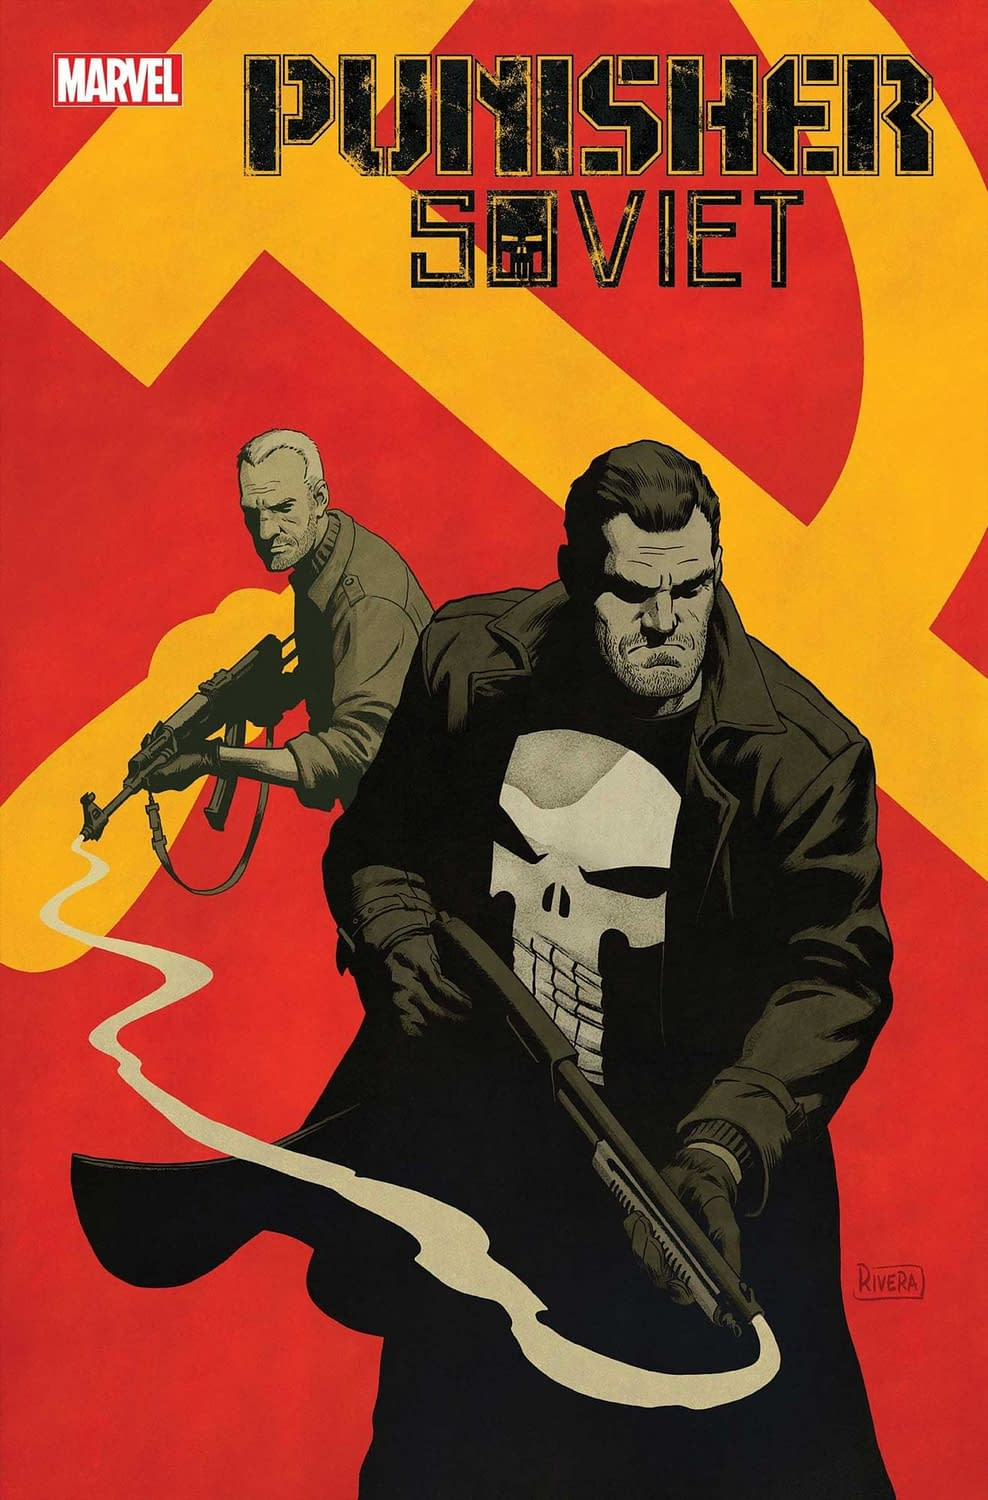 Garth Ennis to Write More Punisher Comics at Marvel Starting in November